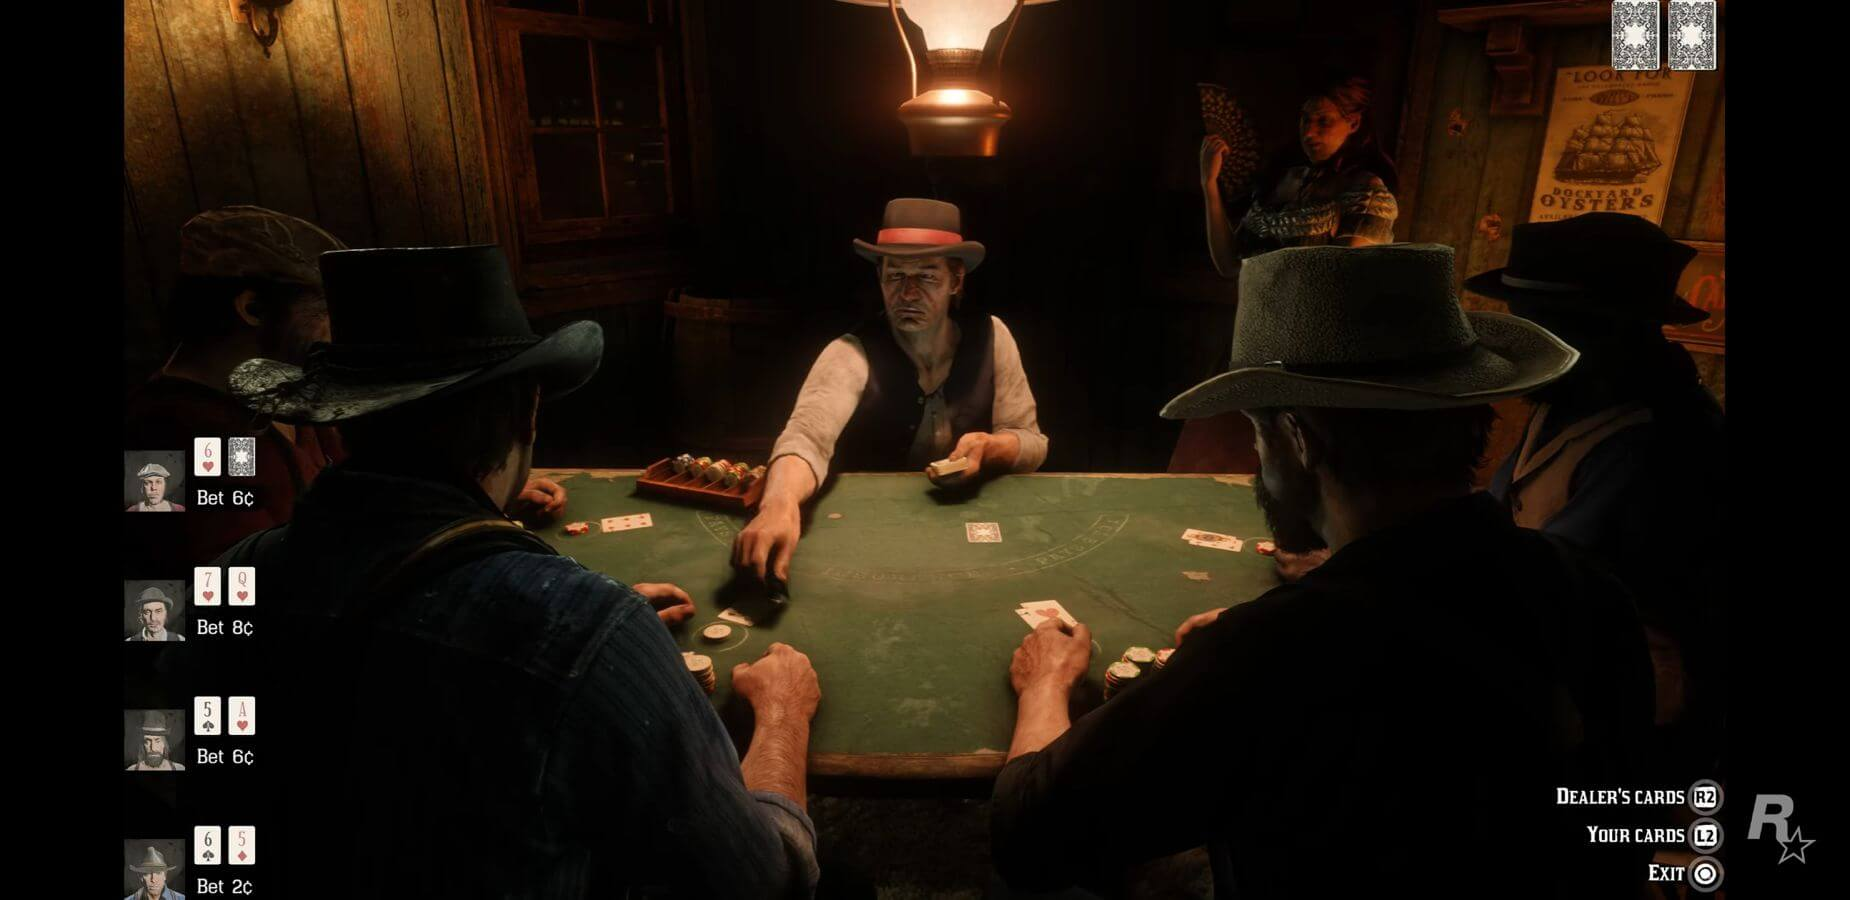 Red Dead Redemption Blackjack